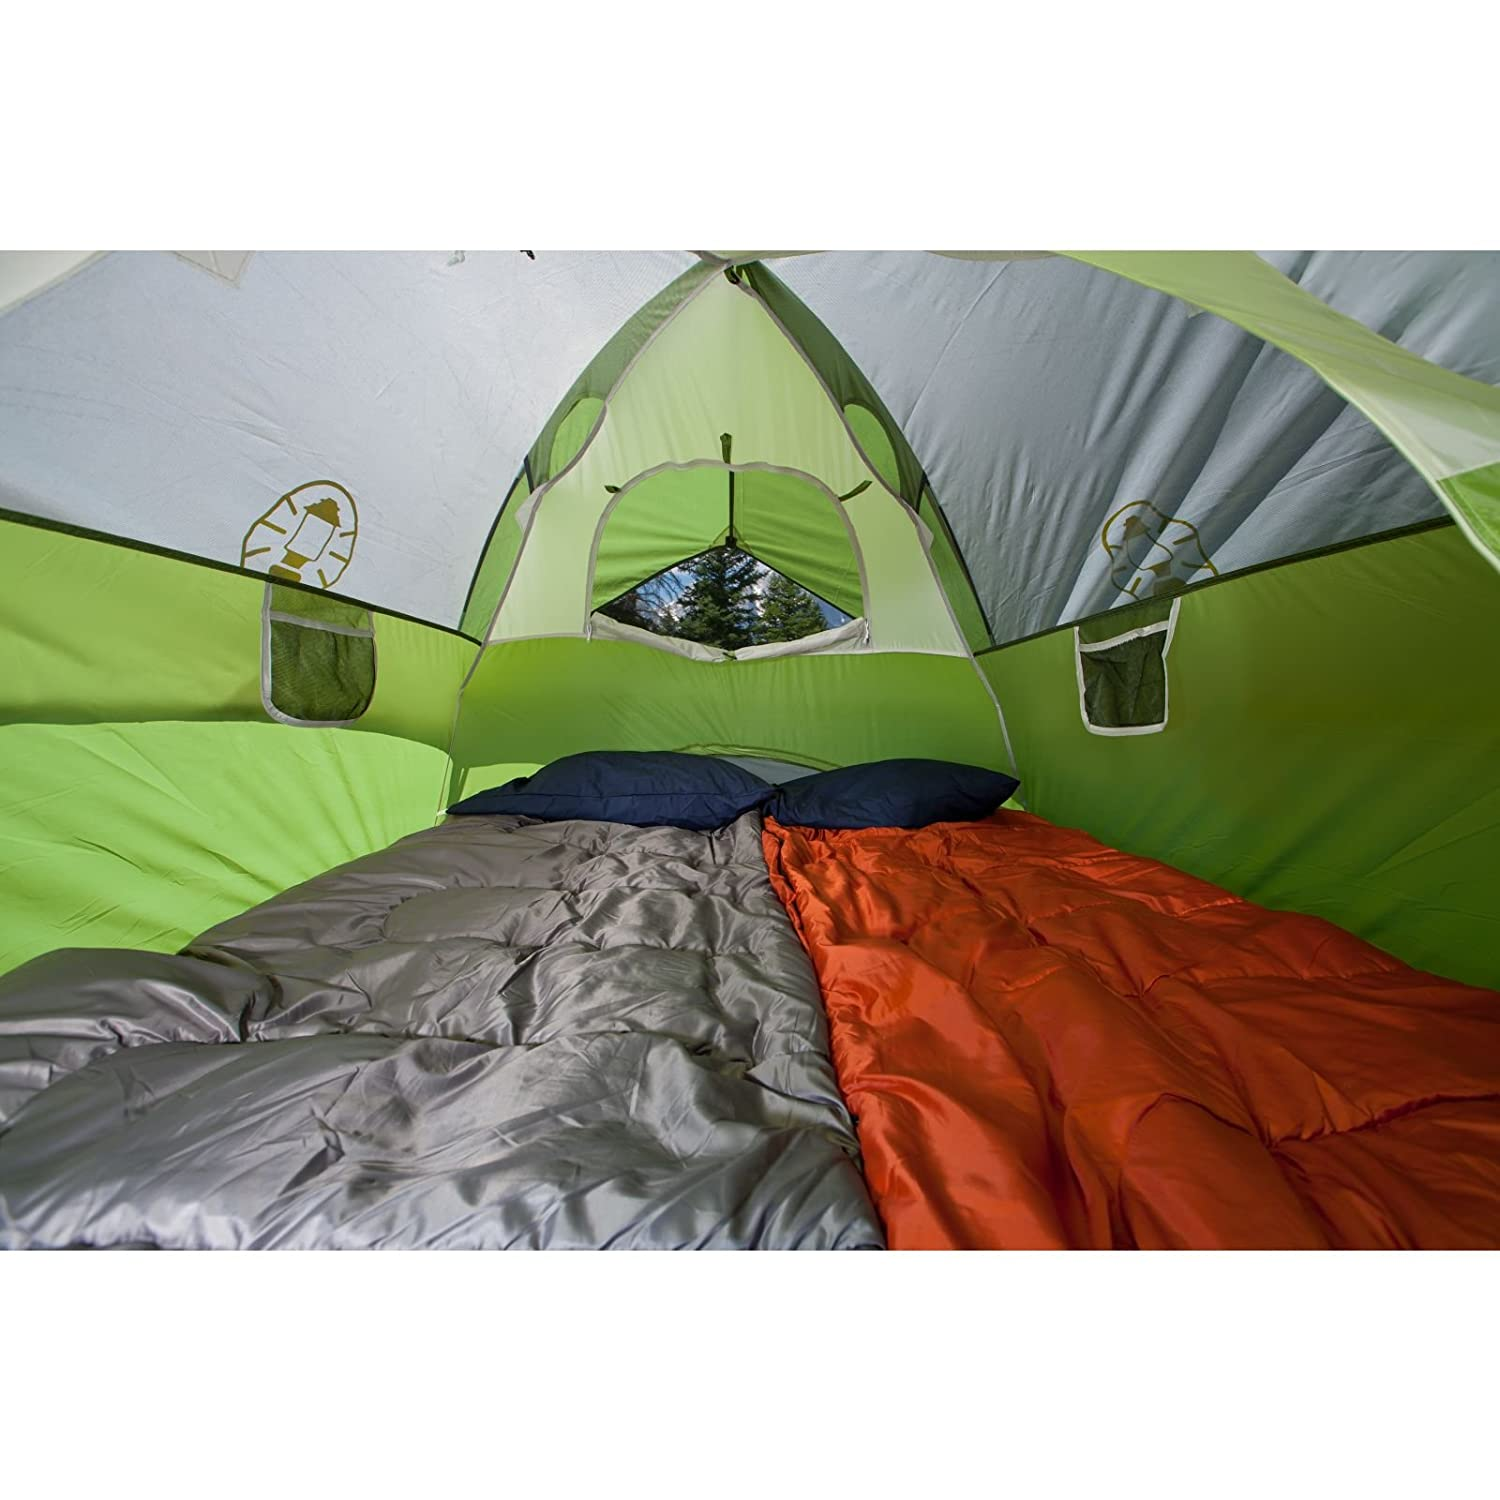 Amazon Coleman Sundome 3 Person Dome Tent Green Family Tents Sports Outdoors